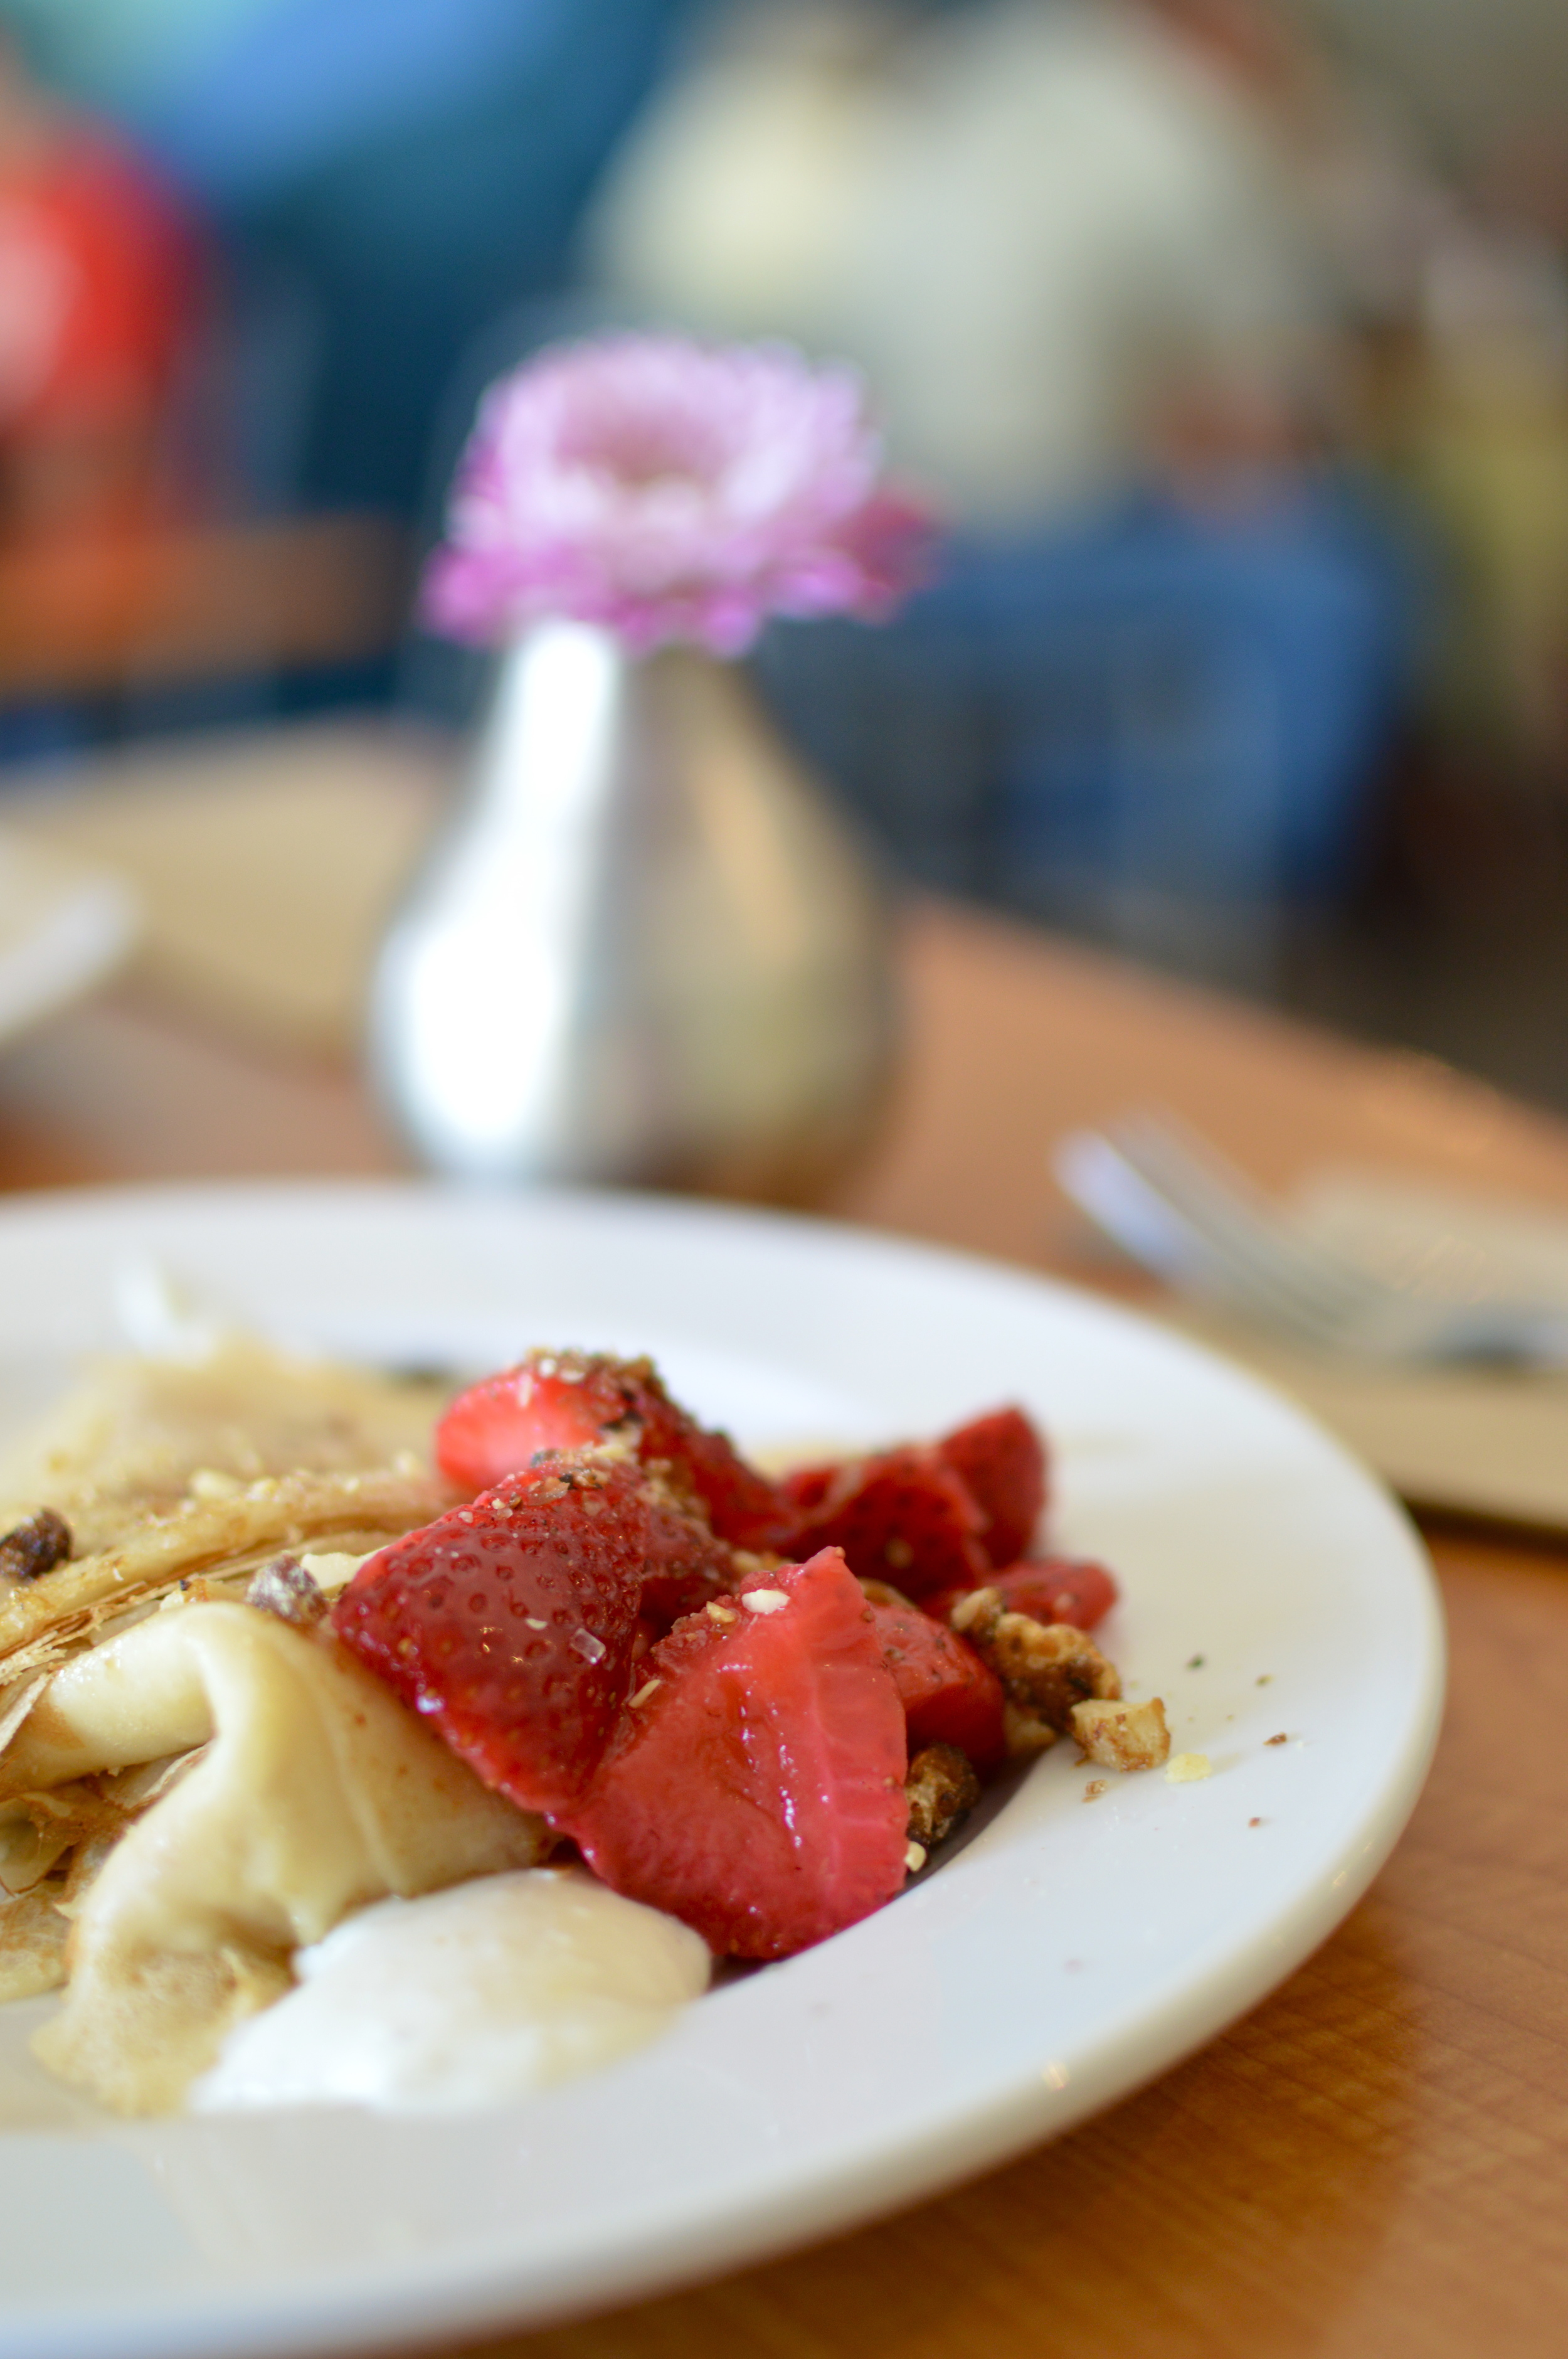 2014-03-07 - Custard Crepe at Crepe Bar - Photography by Diamond Troutman.jpg